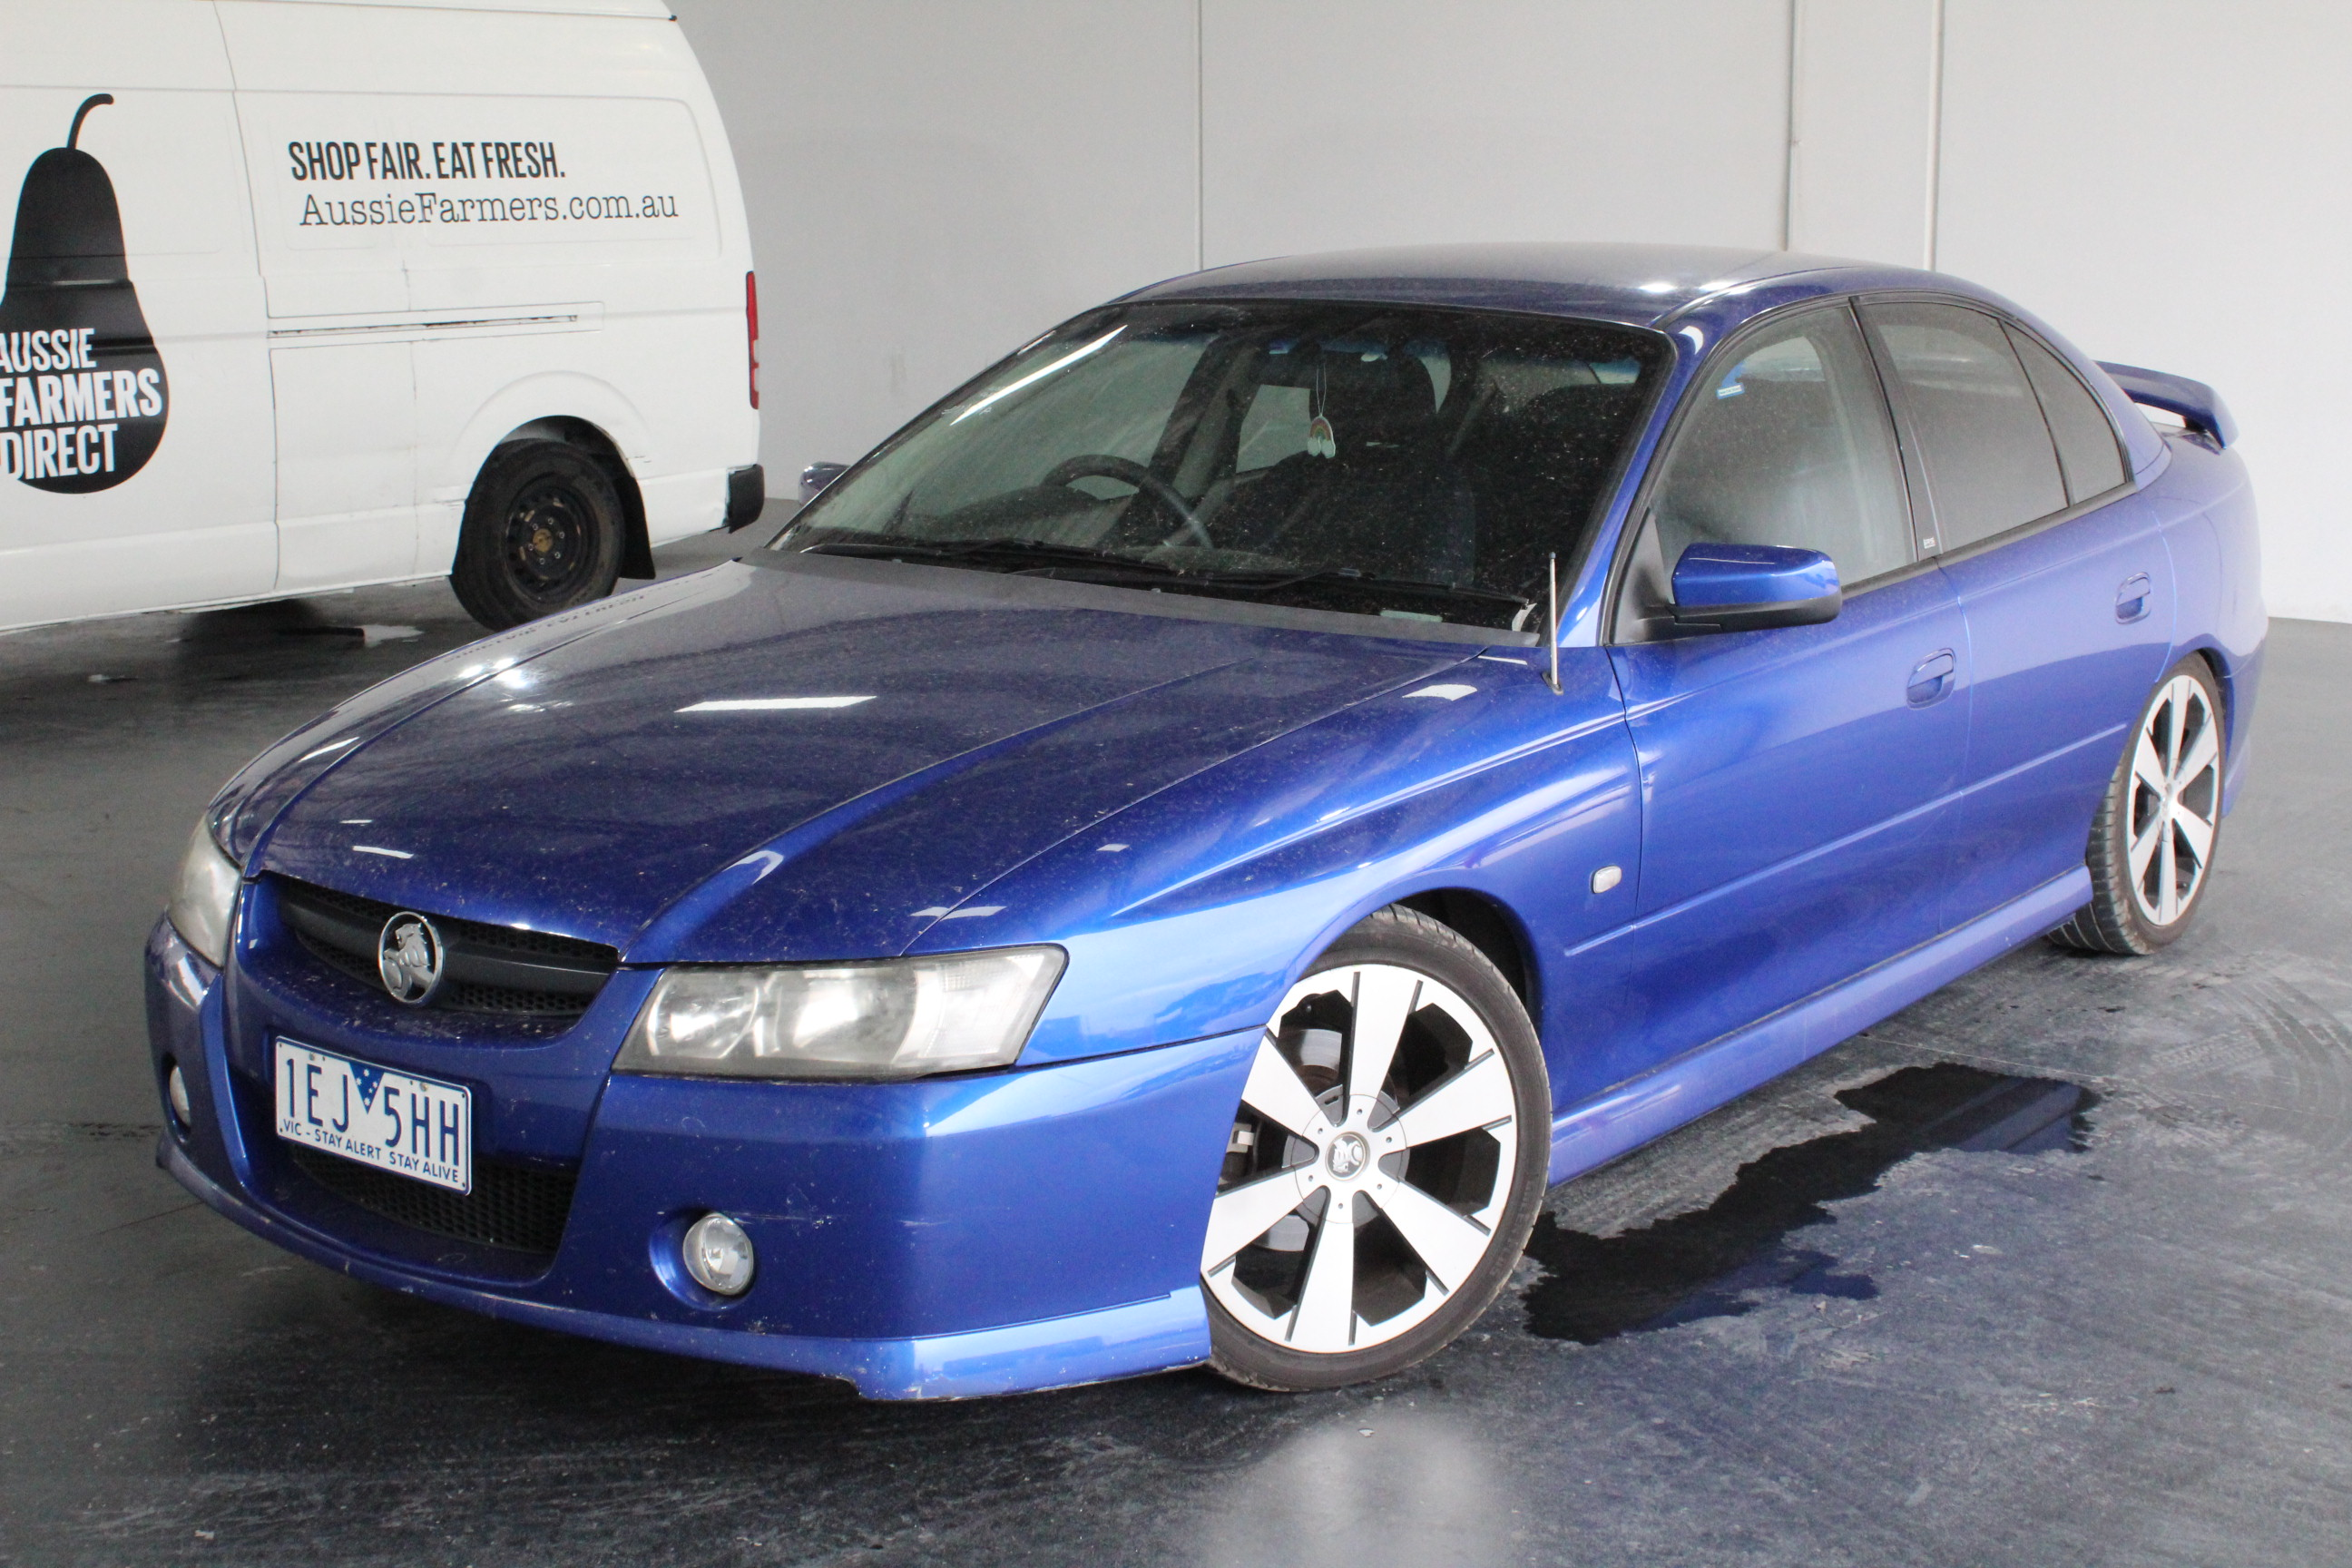 2005 Holden Commodore SV6 VZ Automatic Sedan Auction (0002